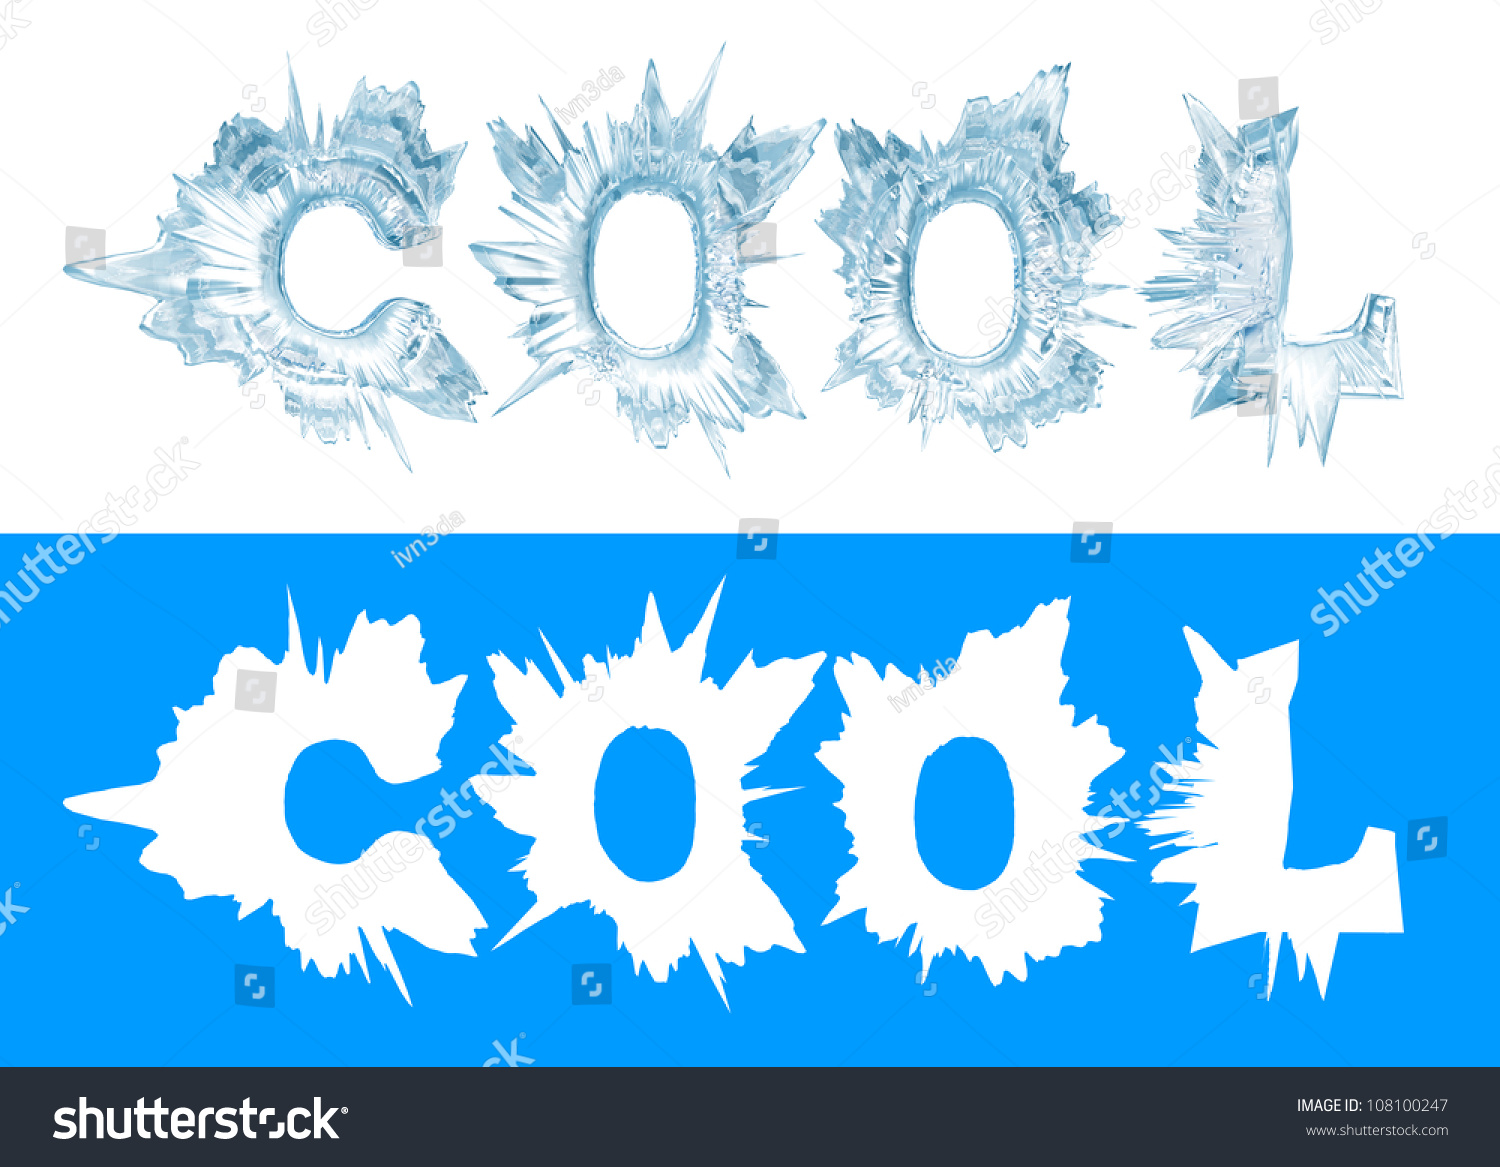 ice crystal letters the word cool